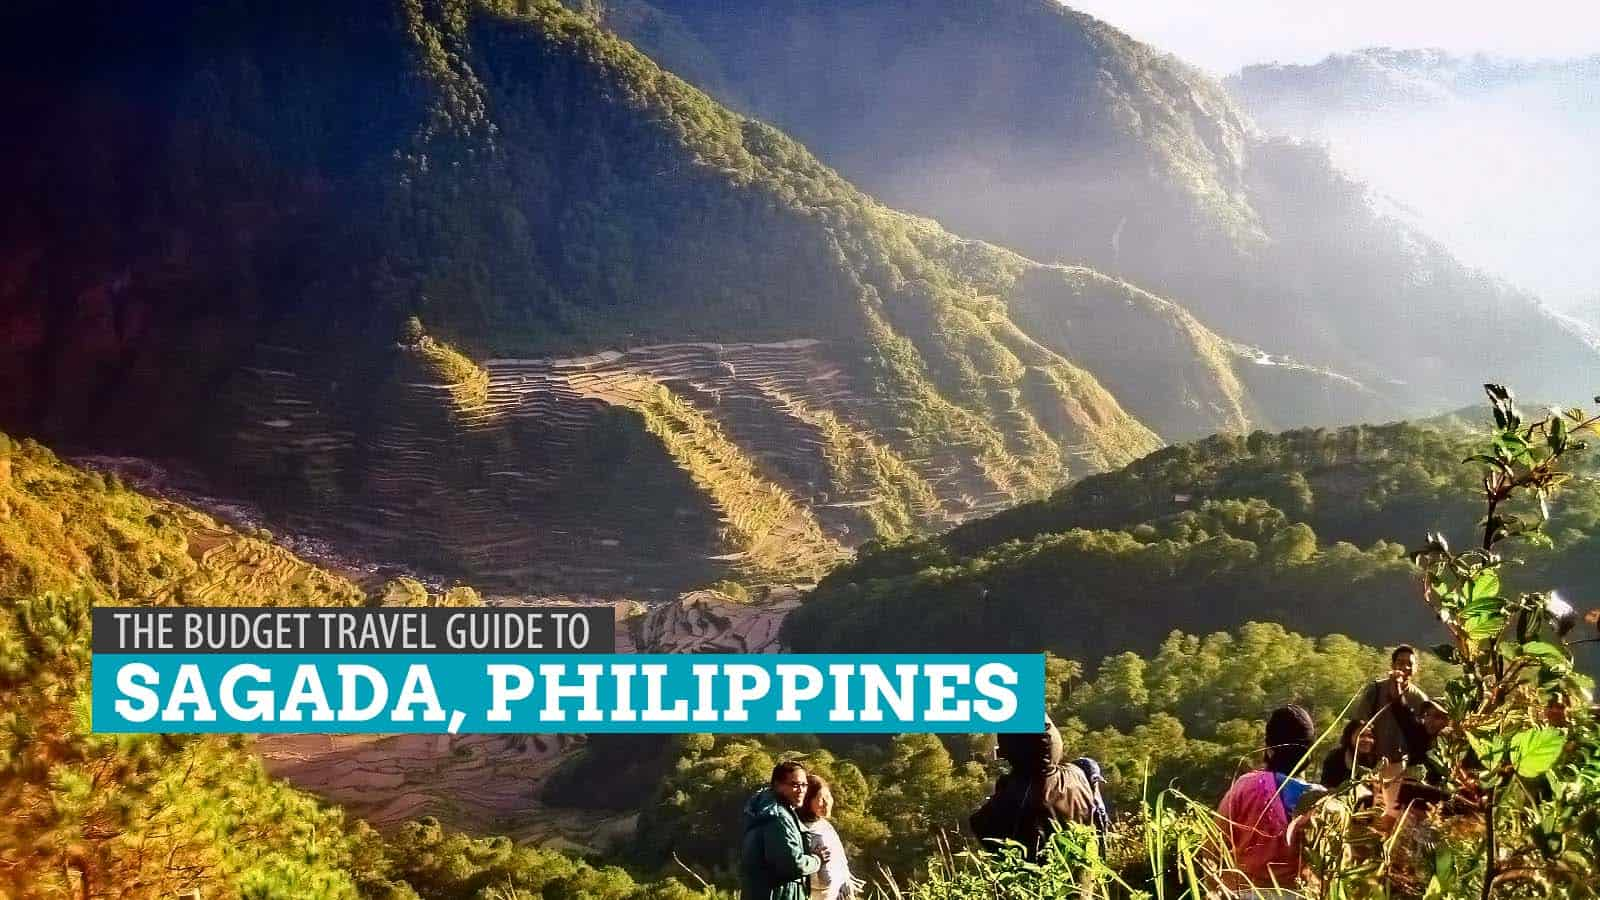 Sagada Travel Guide: Getting There, Sample Itinerary and Budget